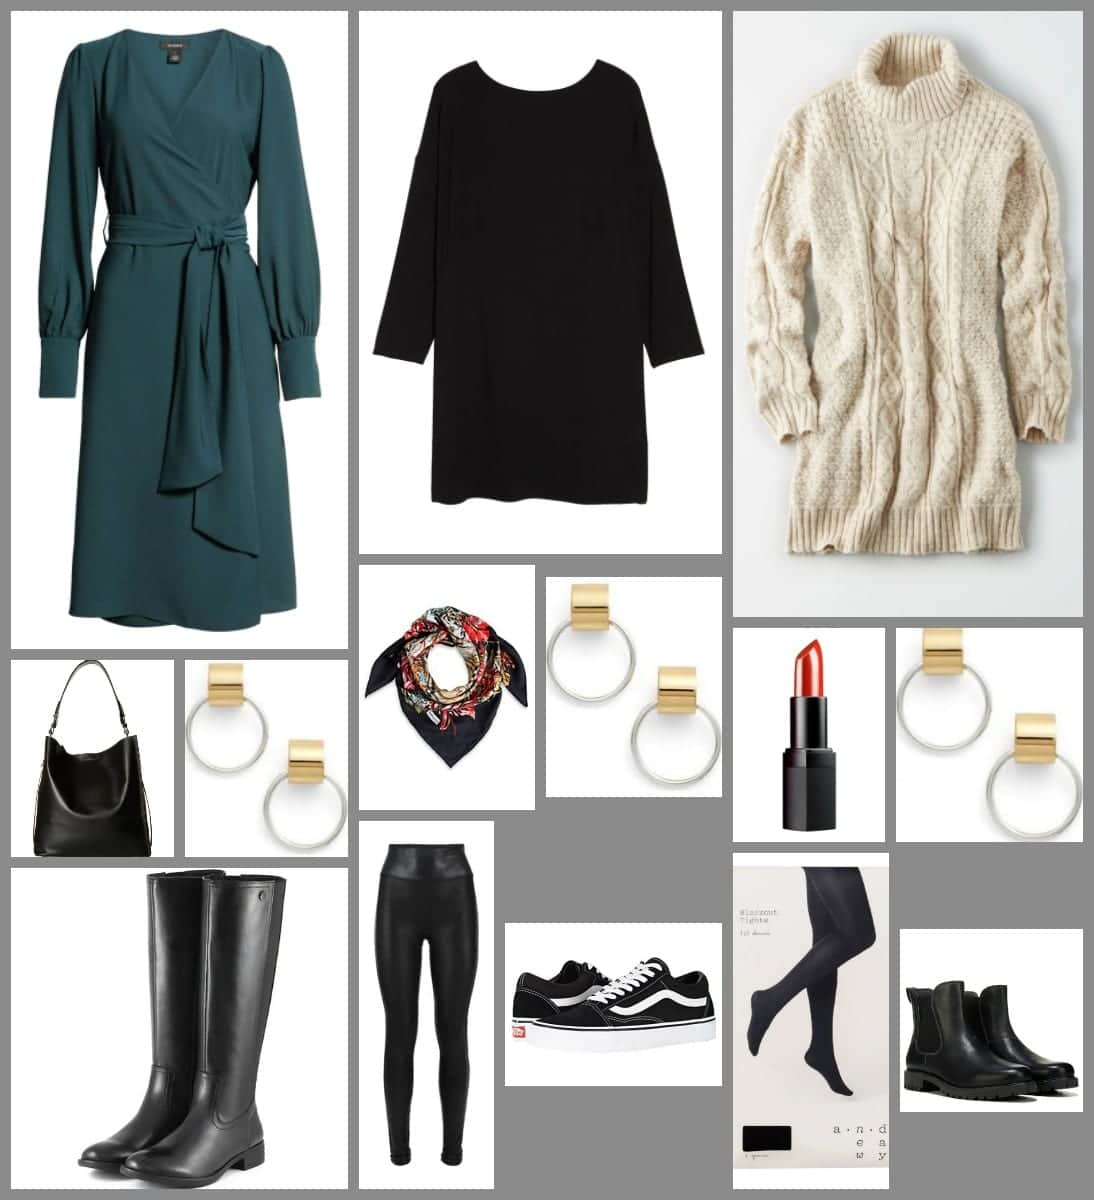 capsule wardrobe how to style dresses